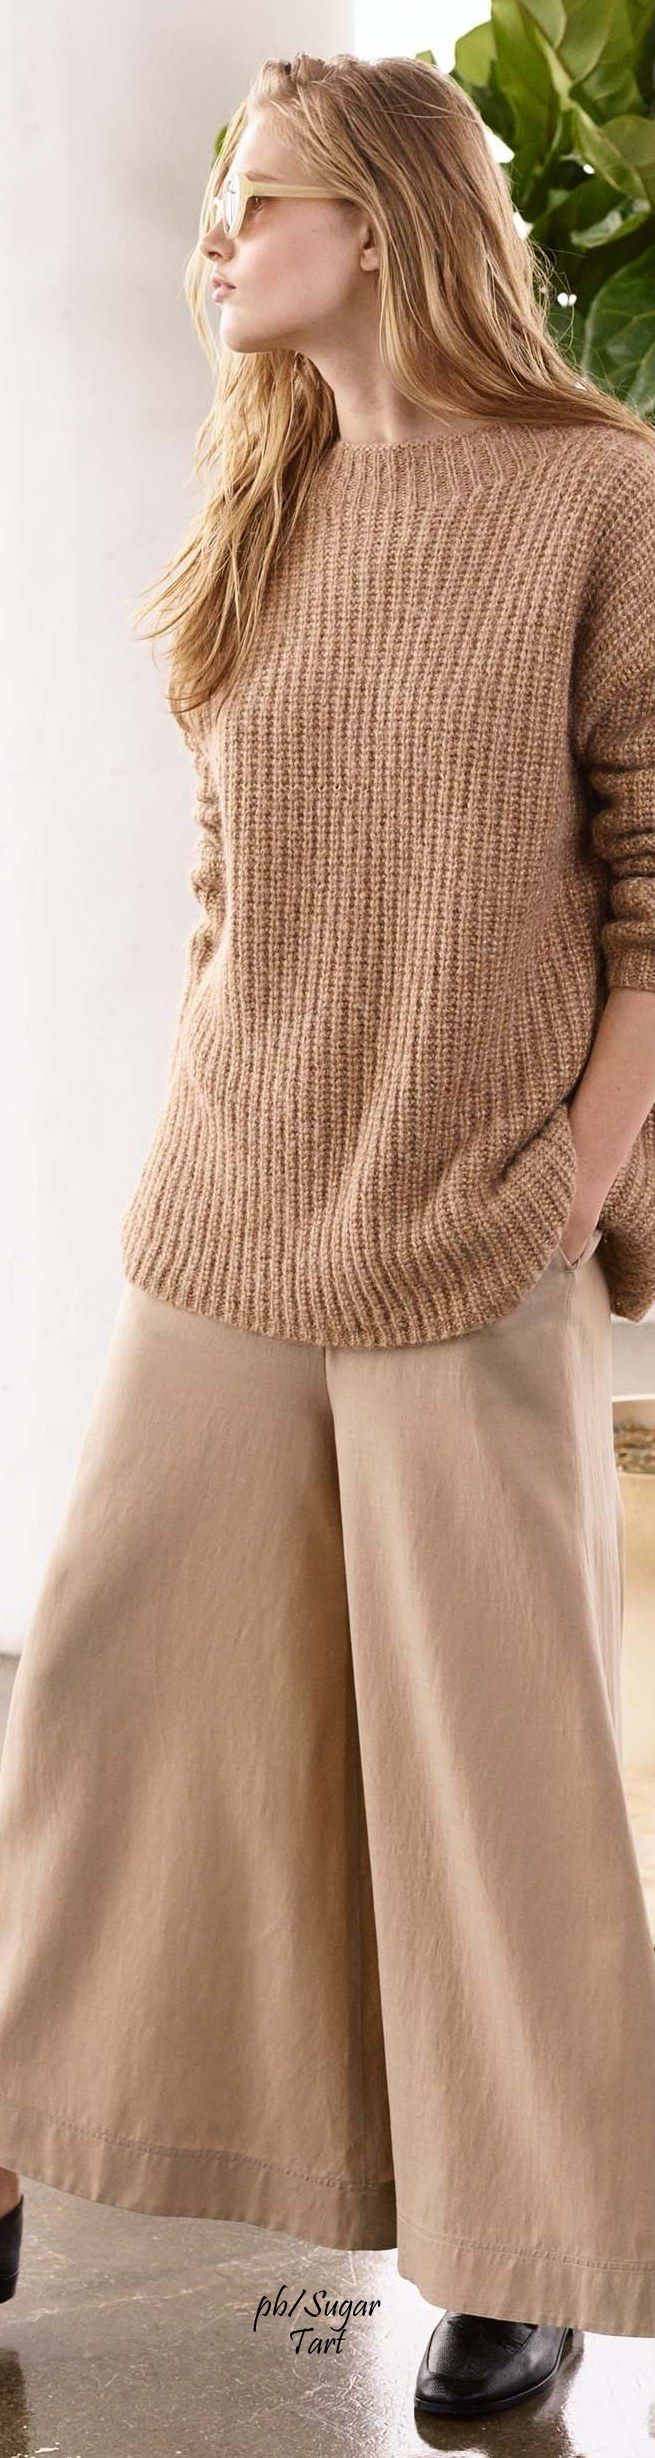 camel knit sweater women fashion outfit clothing style apparel @roressclothes closet ideas